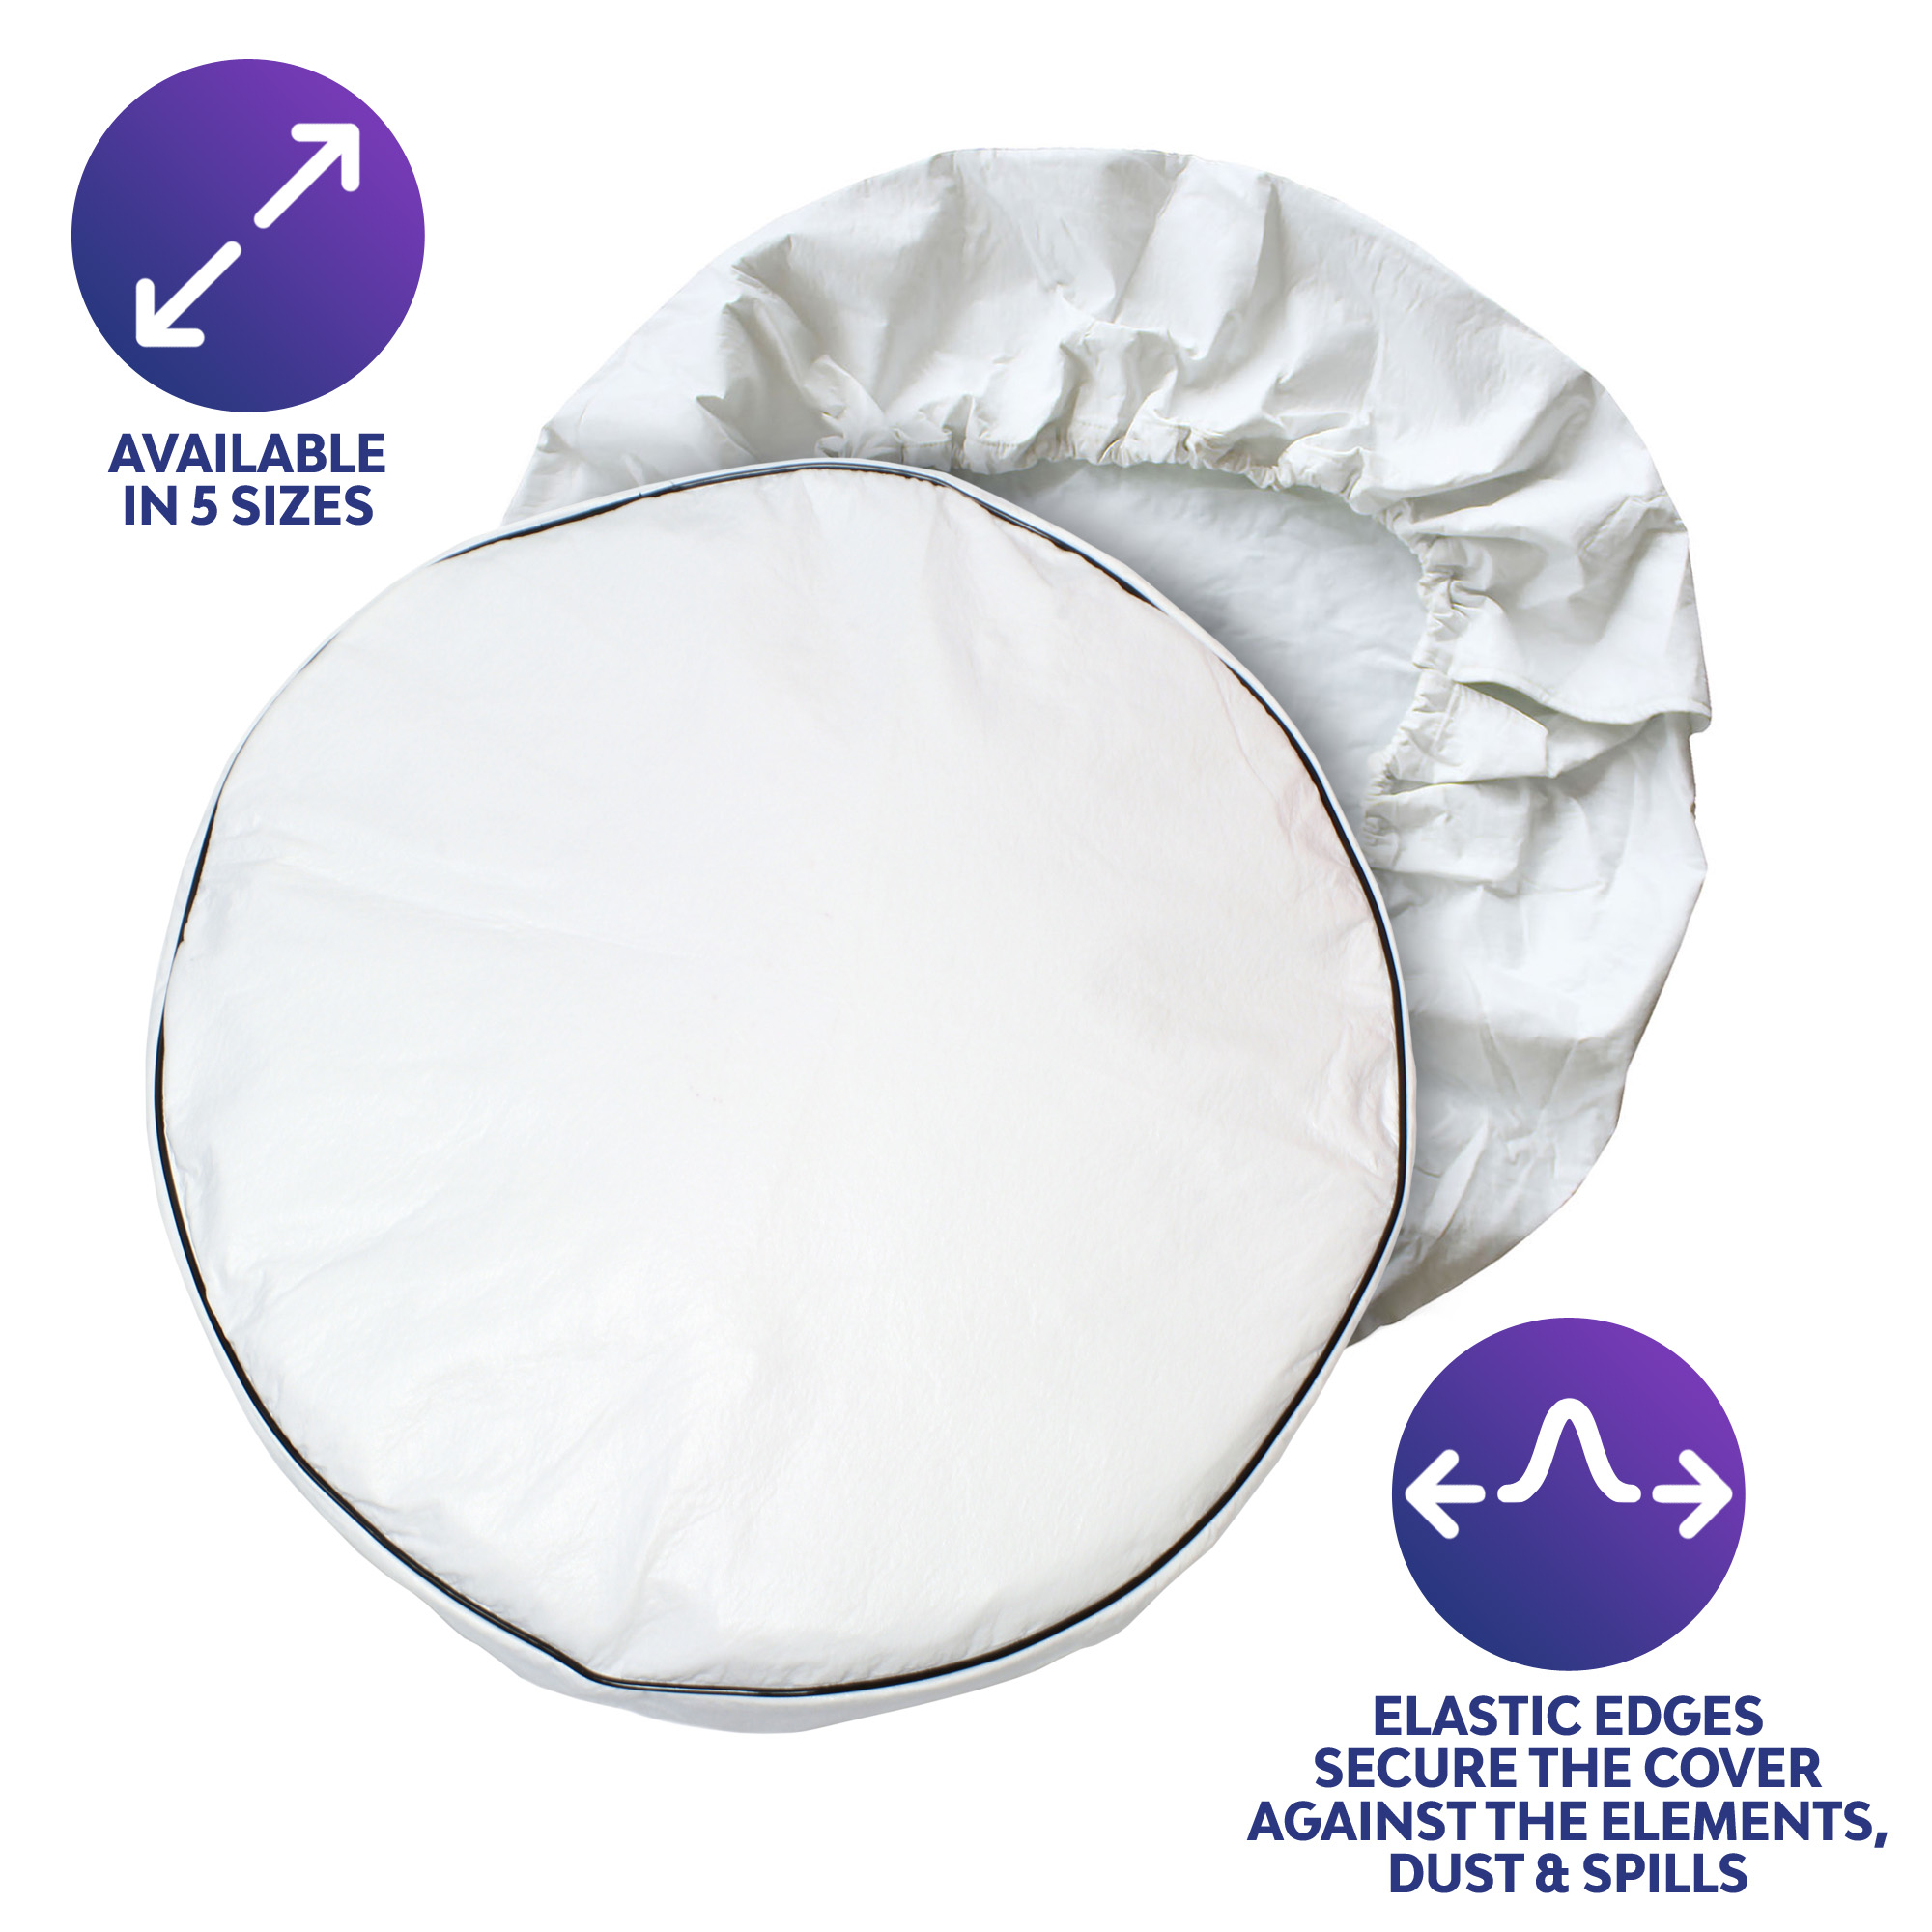 "Camper Wheel Covers Wheel Protector 1-Pack Dumble White RV Tire Covers Single 1-Pack for 28/"" Inch Diameter Tires"